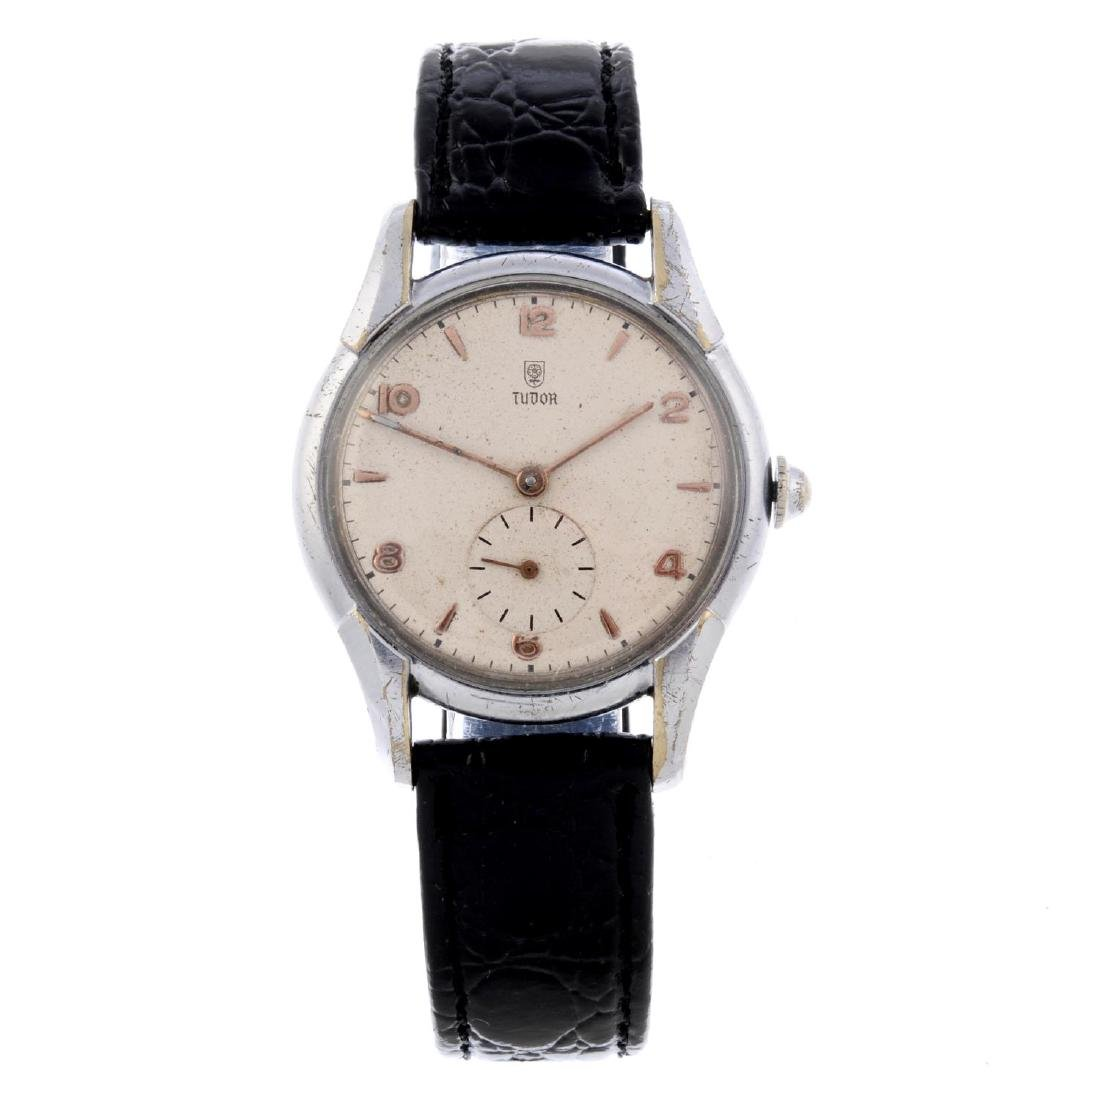 TUDOR - a gentleman's wrist watch. Stainless steel